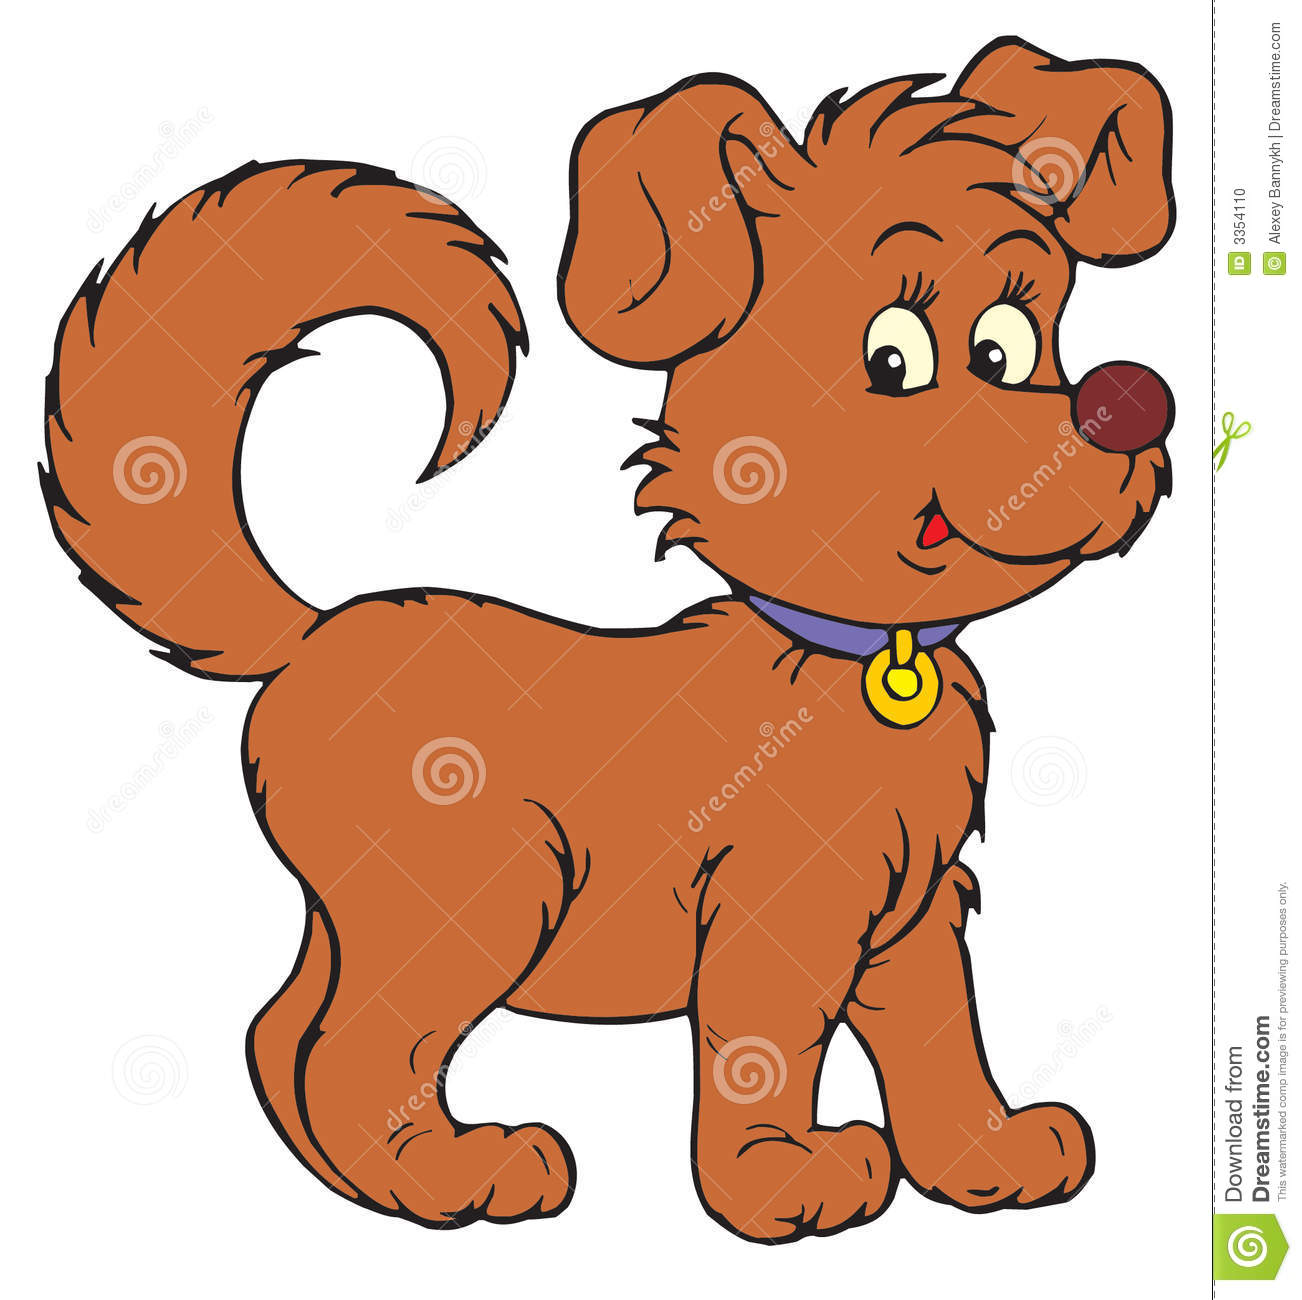 clipart dog clip art clipart panda free clipart images rh clipartpanda com clip art dogs free clip art dogs and cats